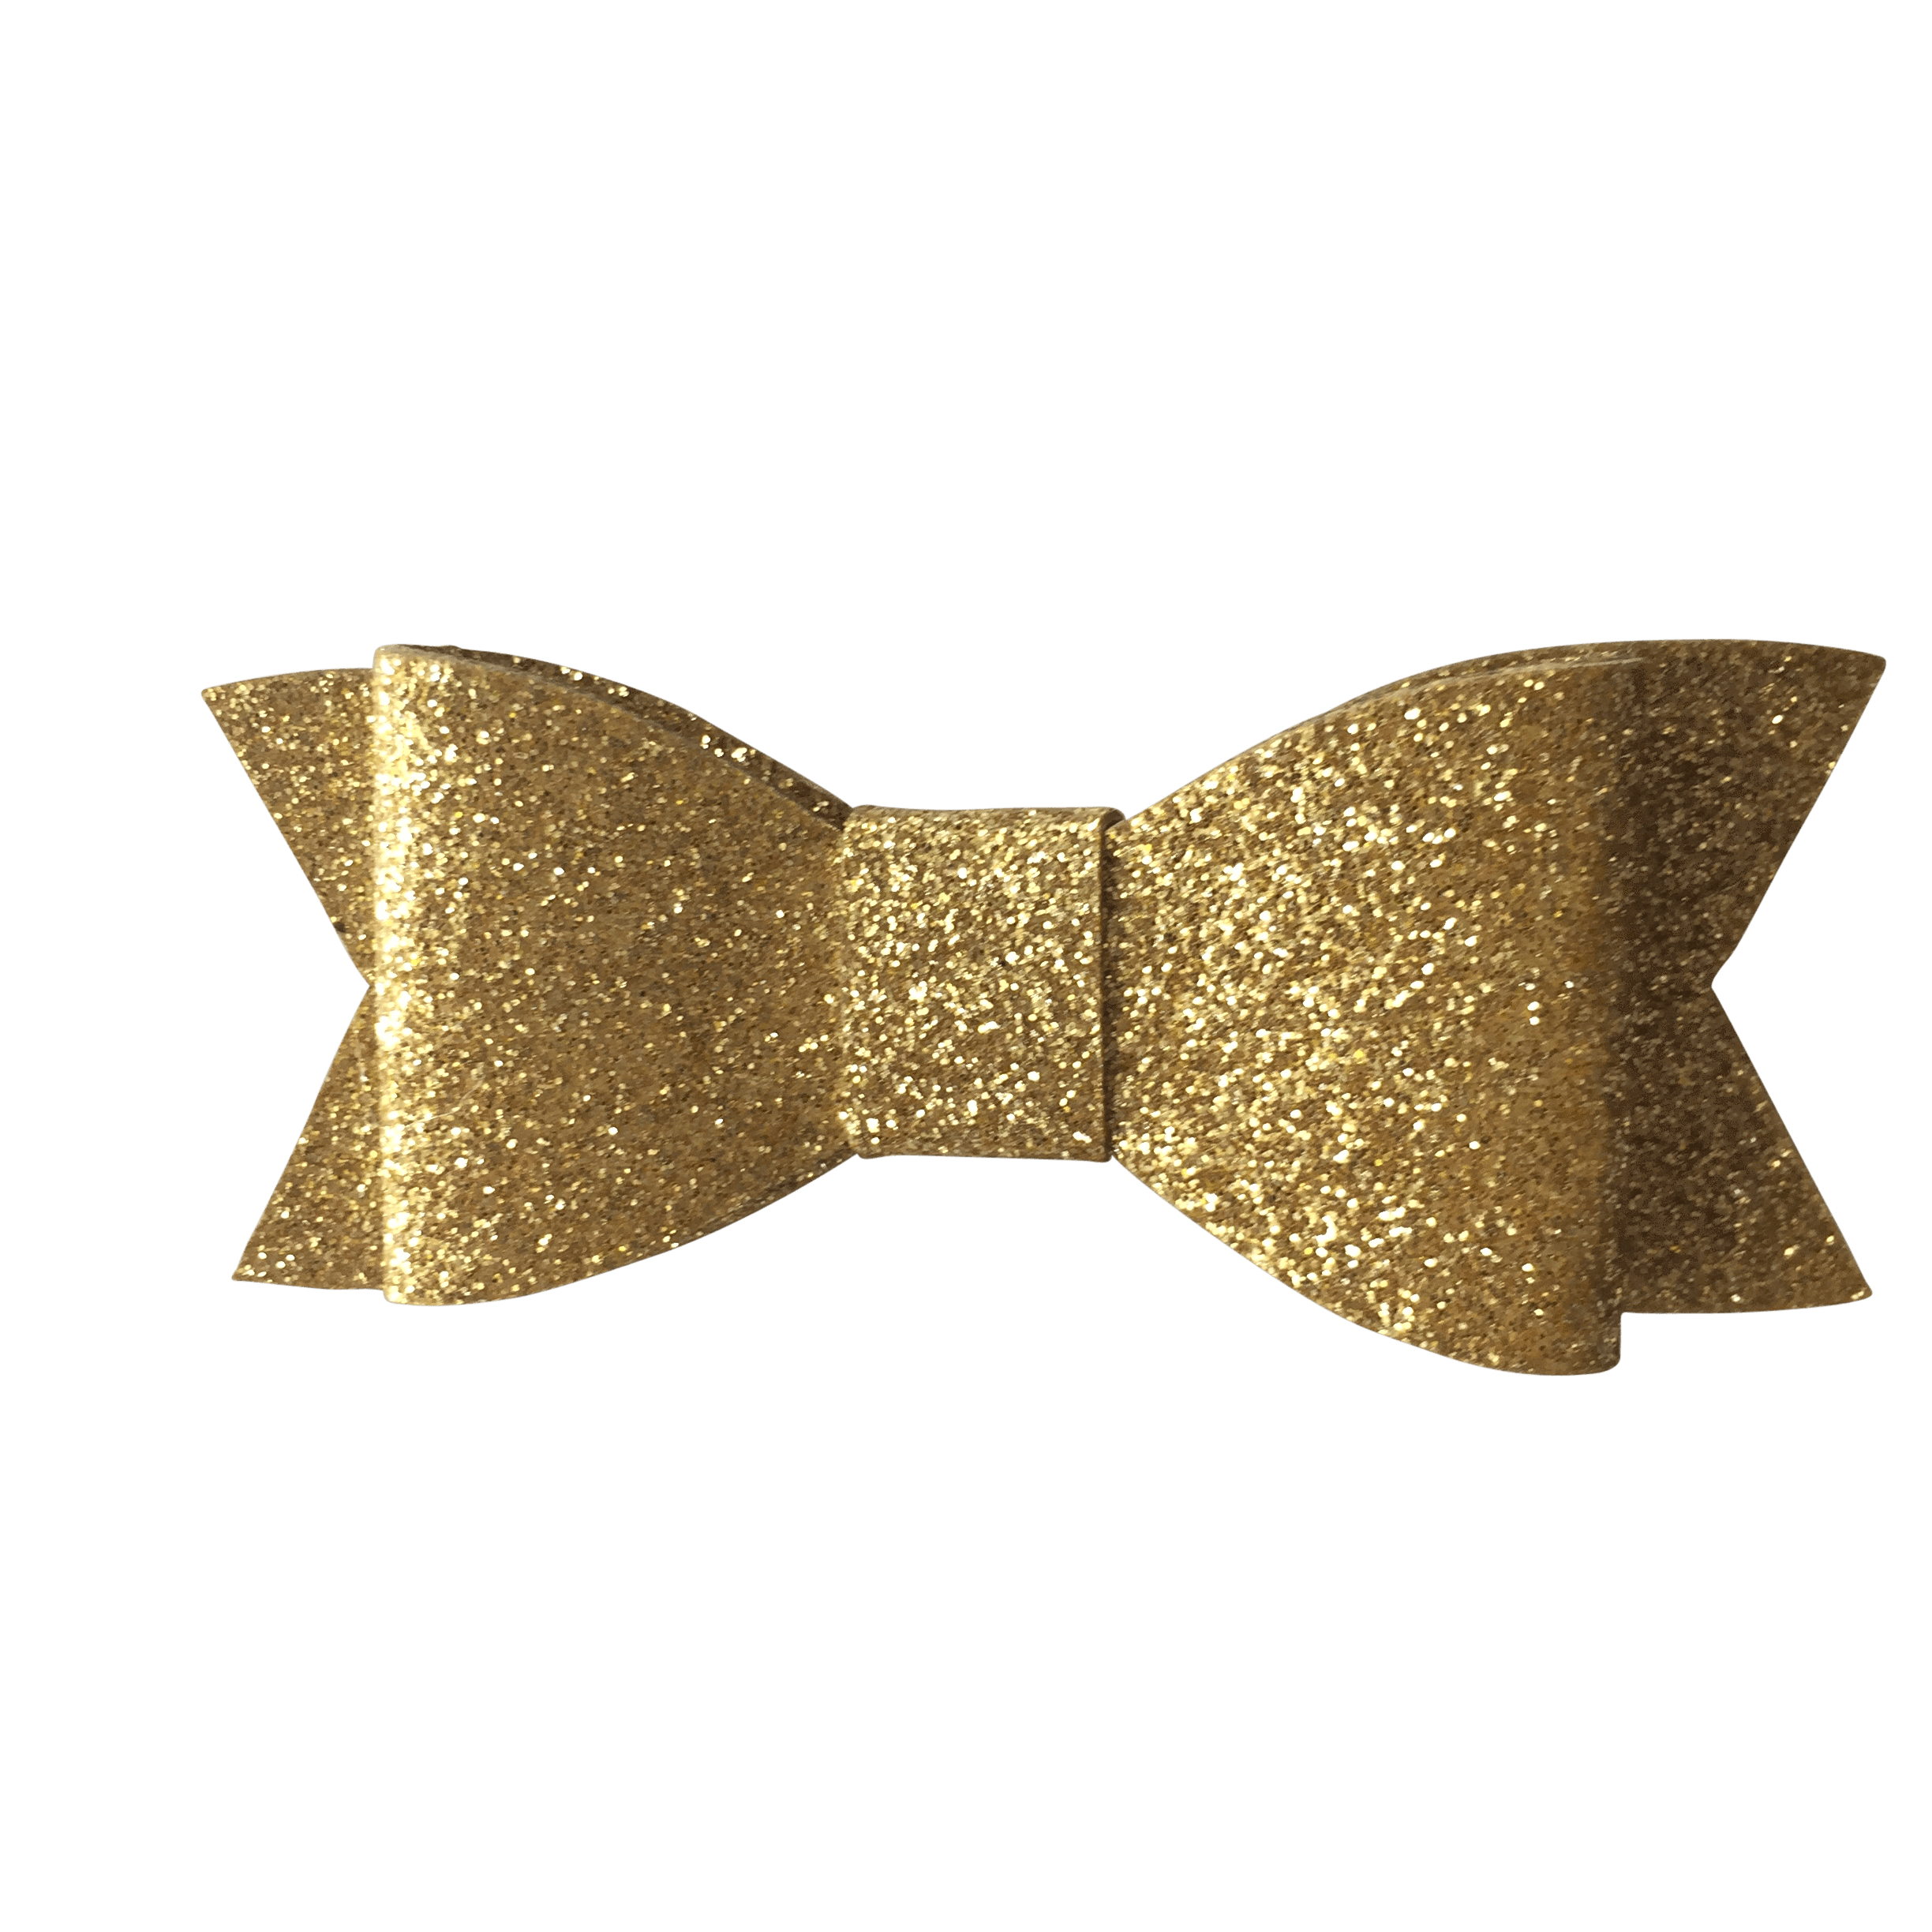 Bowties for Boys - Glittery - Bow Ties - School Uniform Hair Accessories - Ponytails and Fairytales